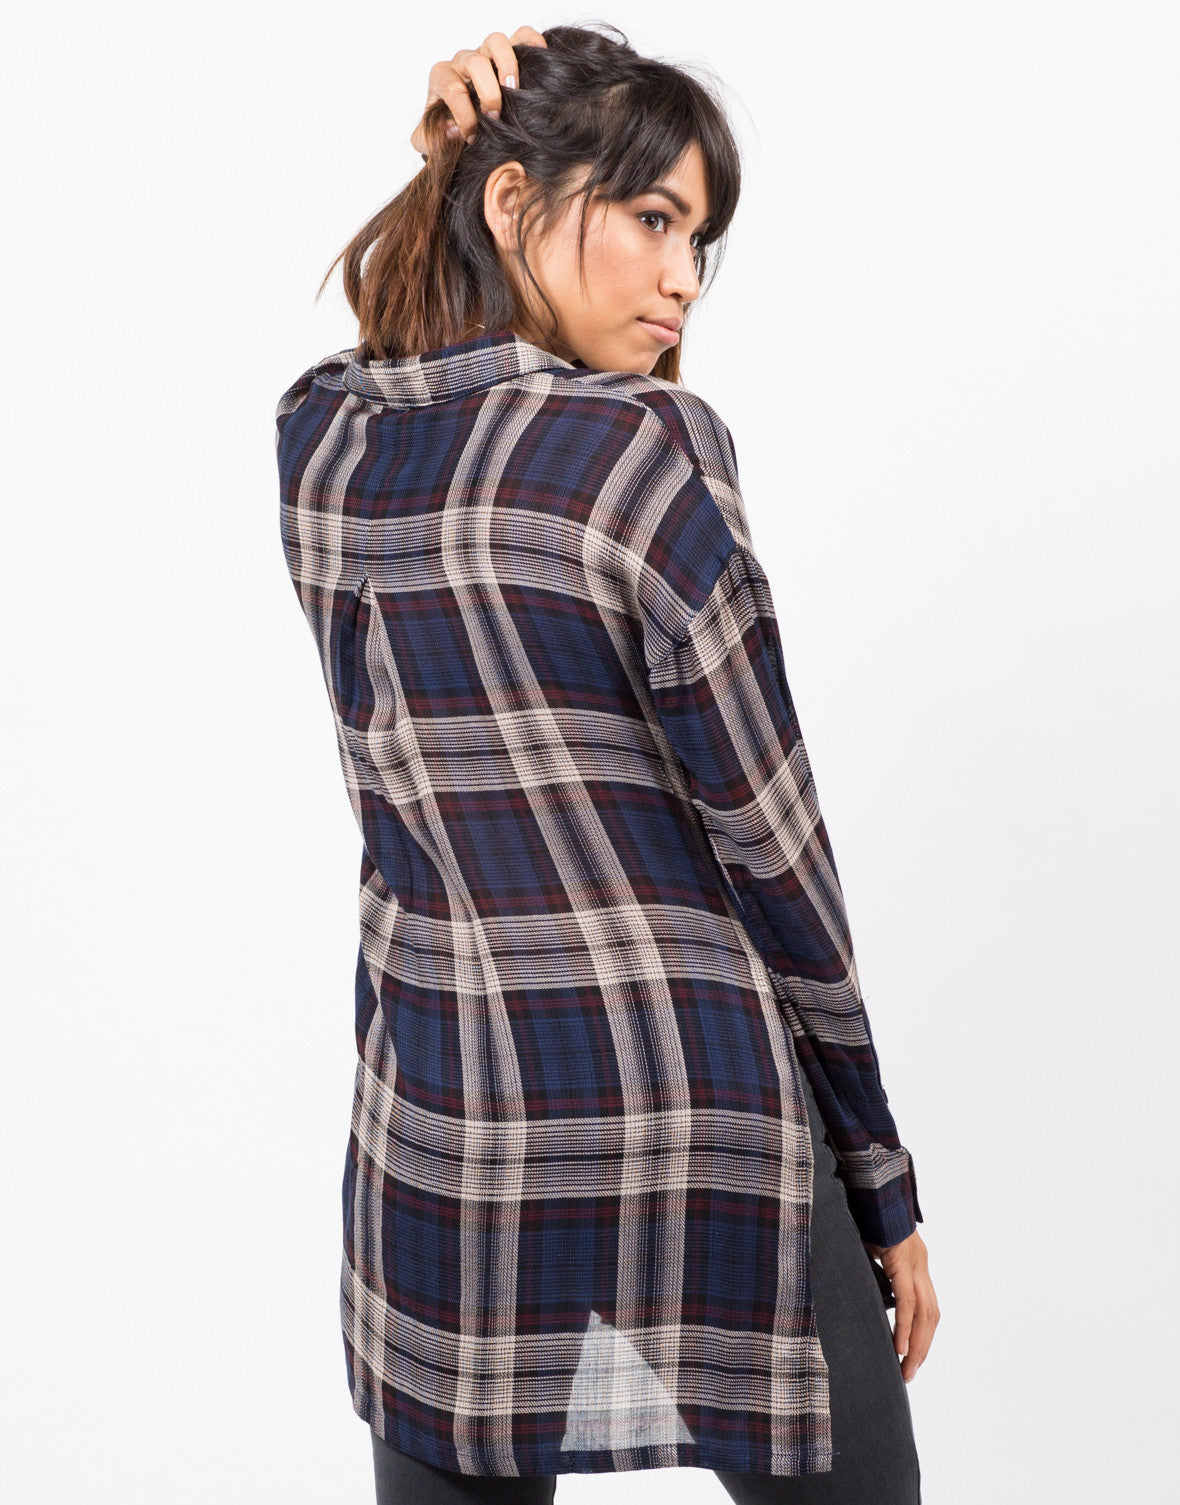 Back View of Sheer Plaid Blouse